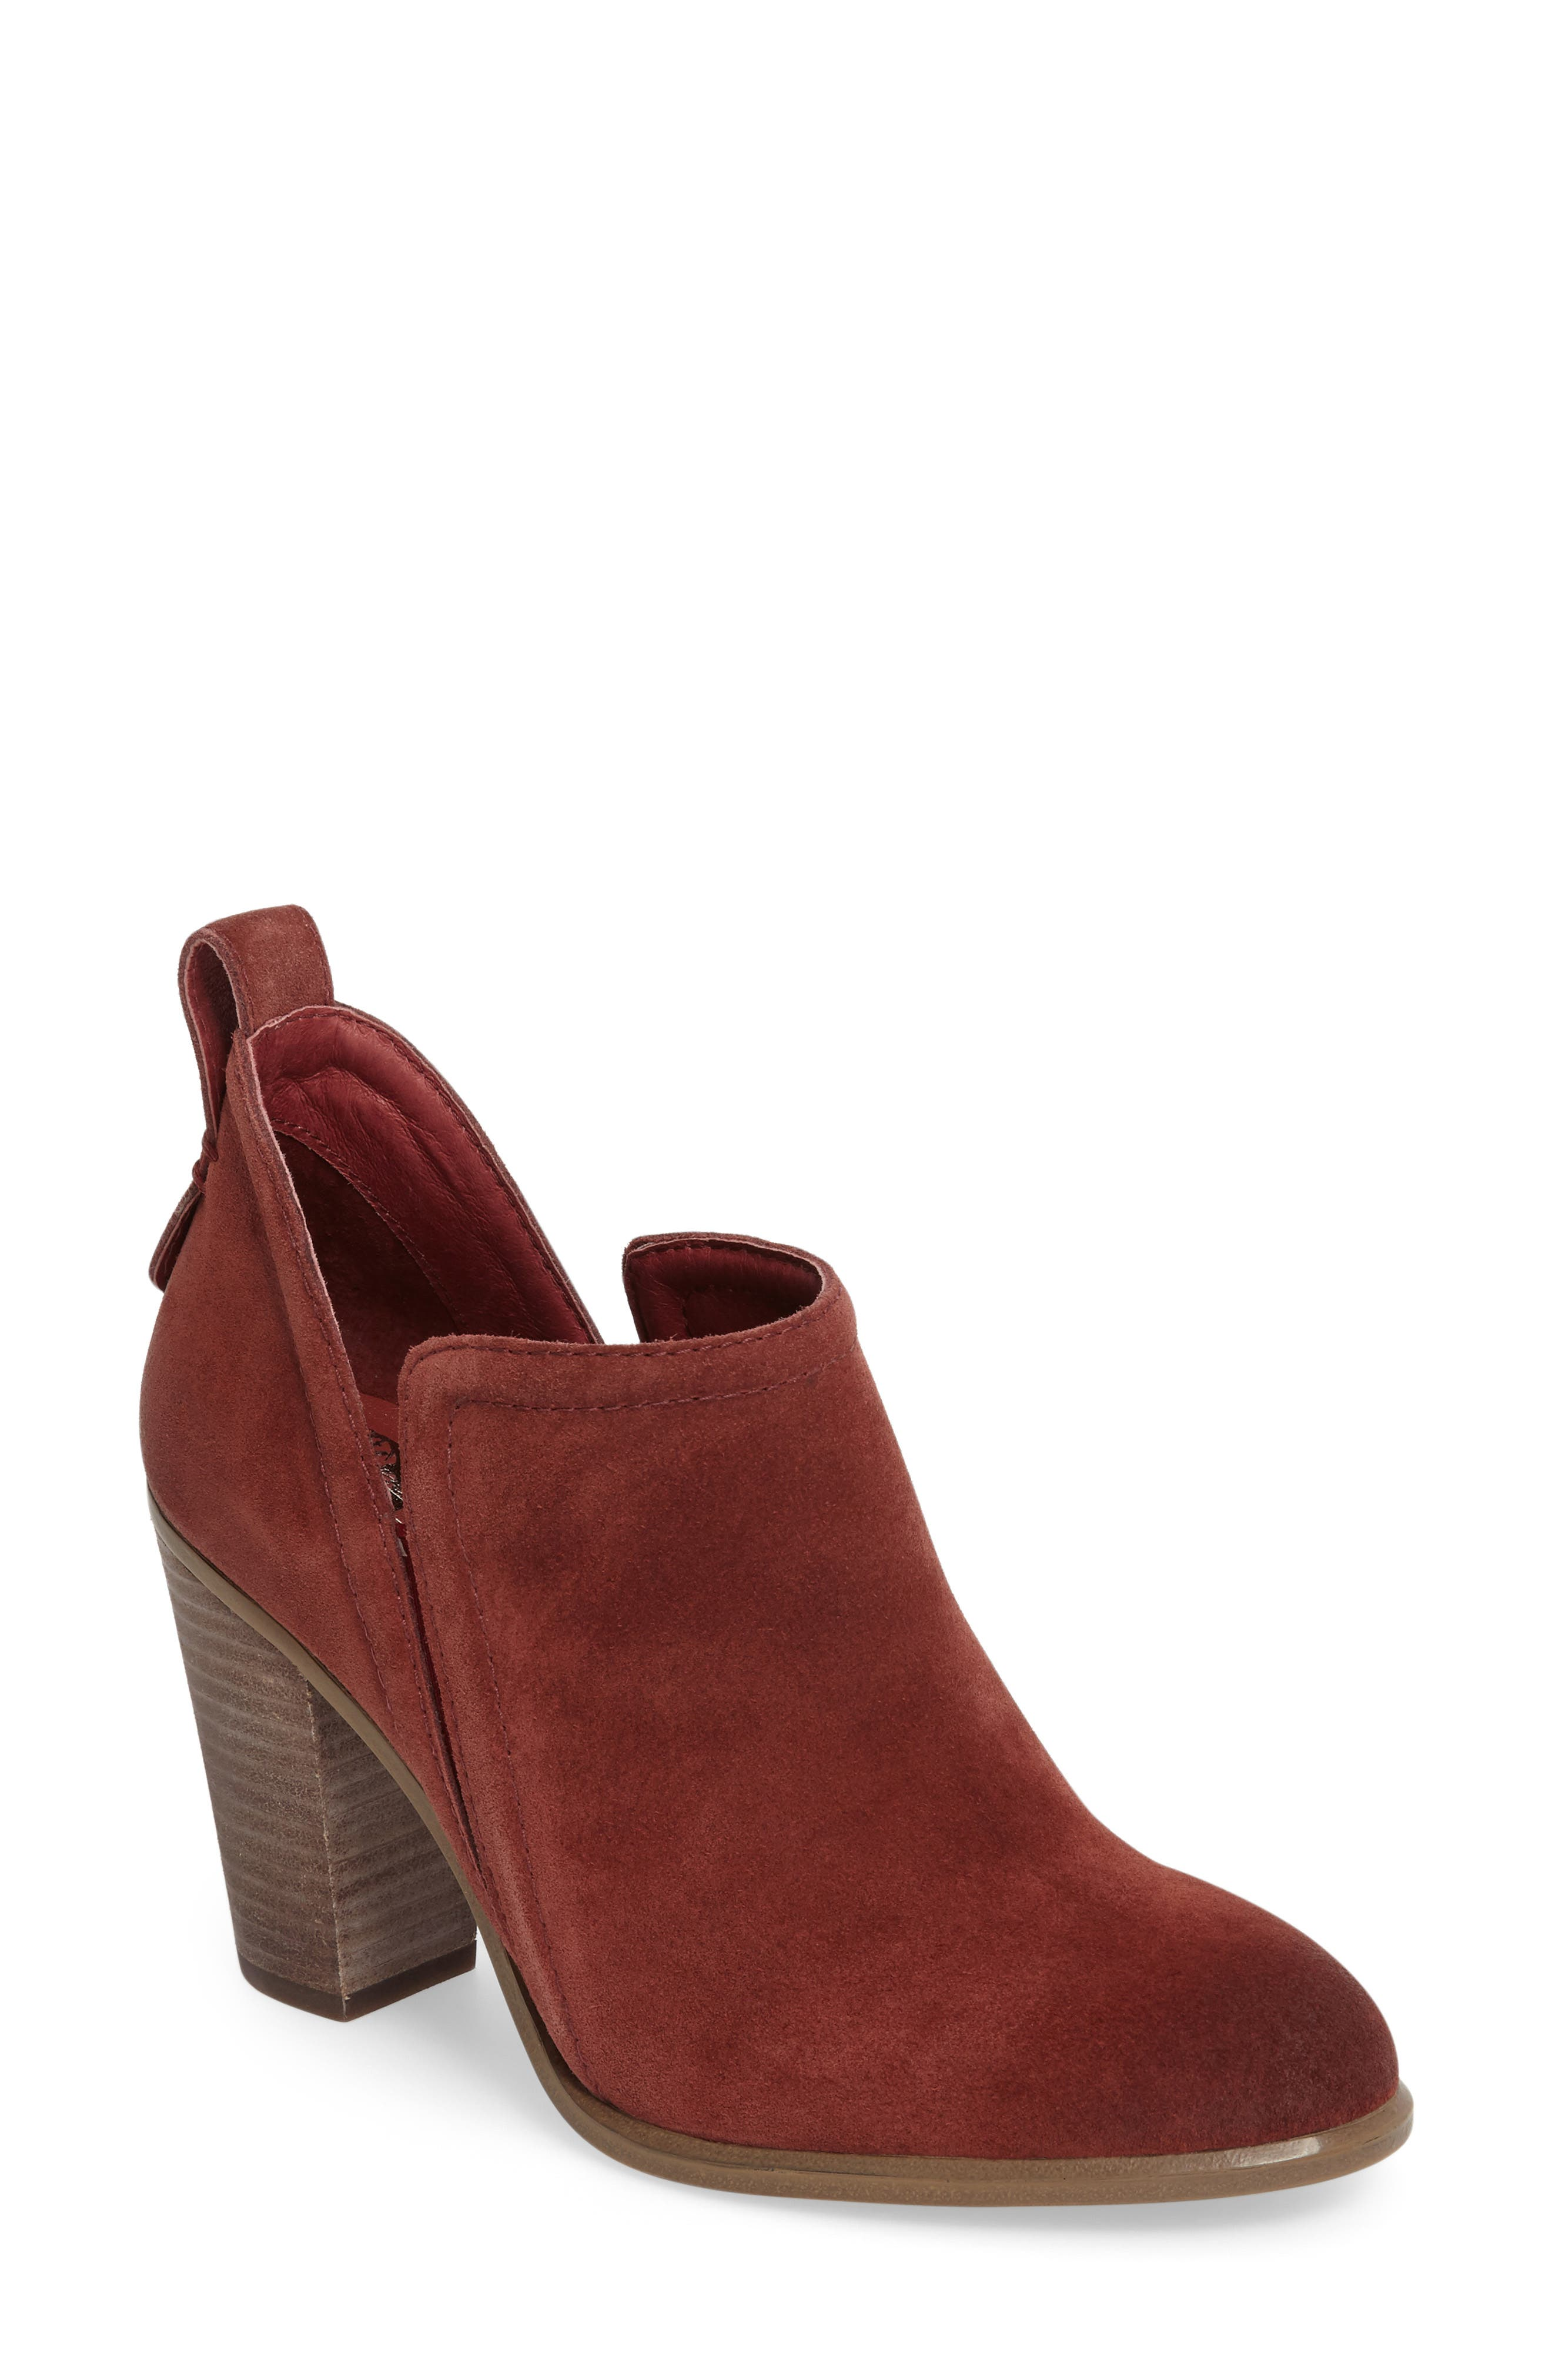 Francia Bootie,                             Main thumbnail 1, color,                             930